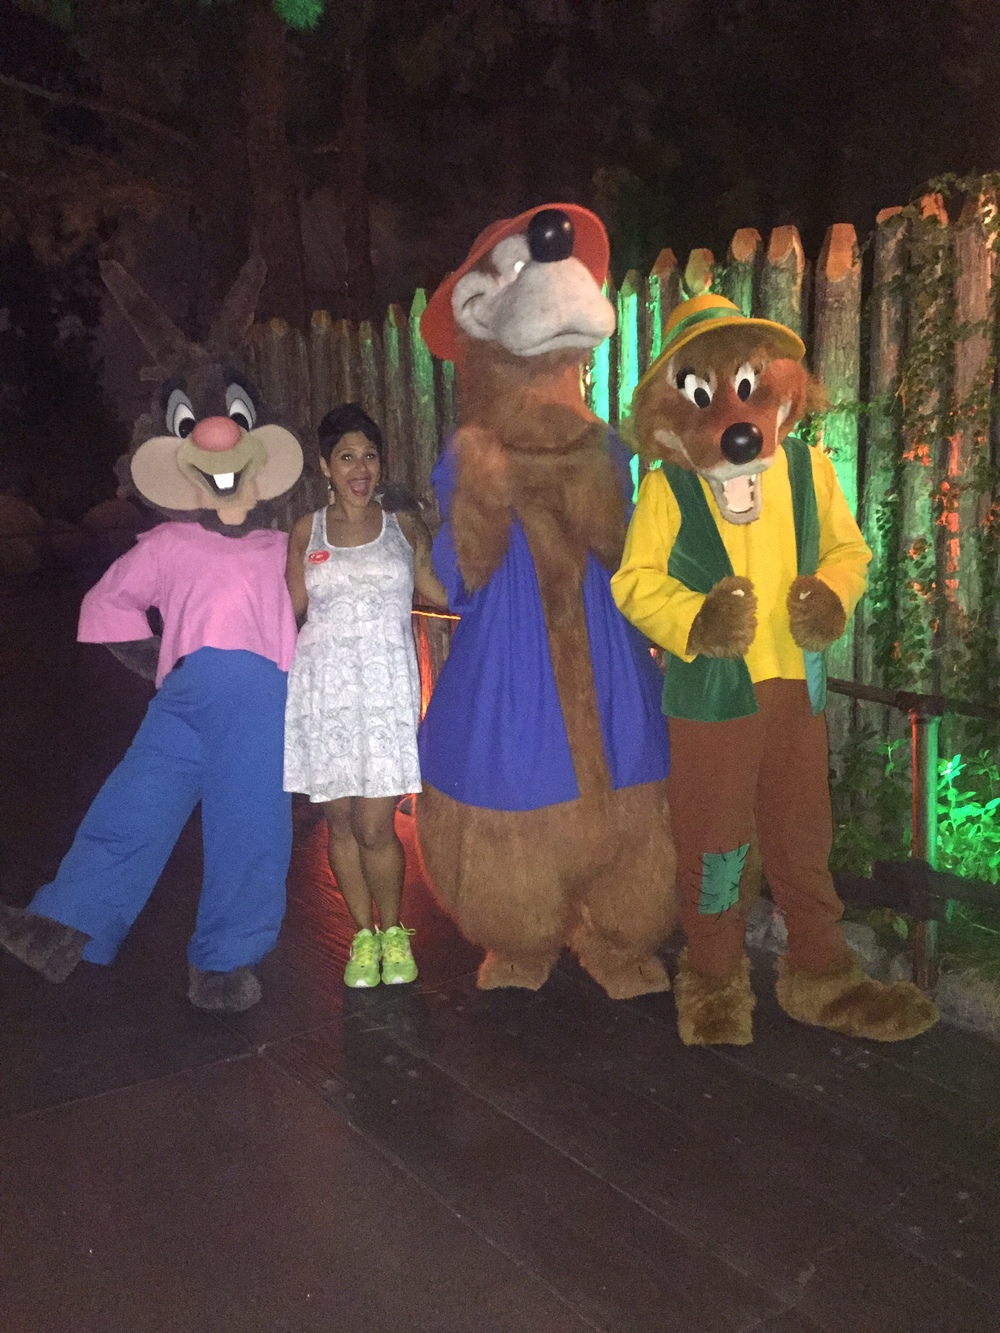 brer-fox-brer-bear-brer-rabbit-disneyland.jpg